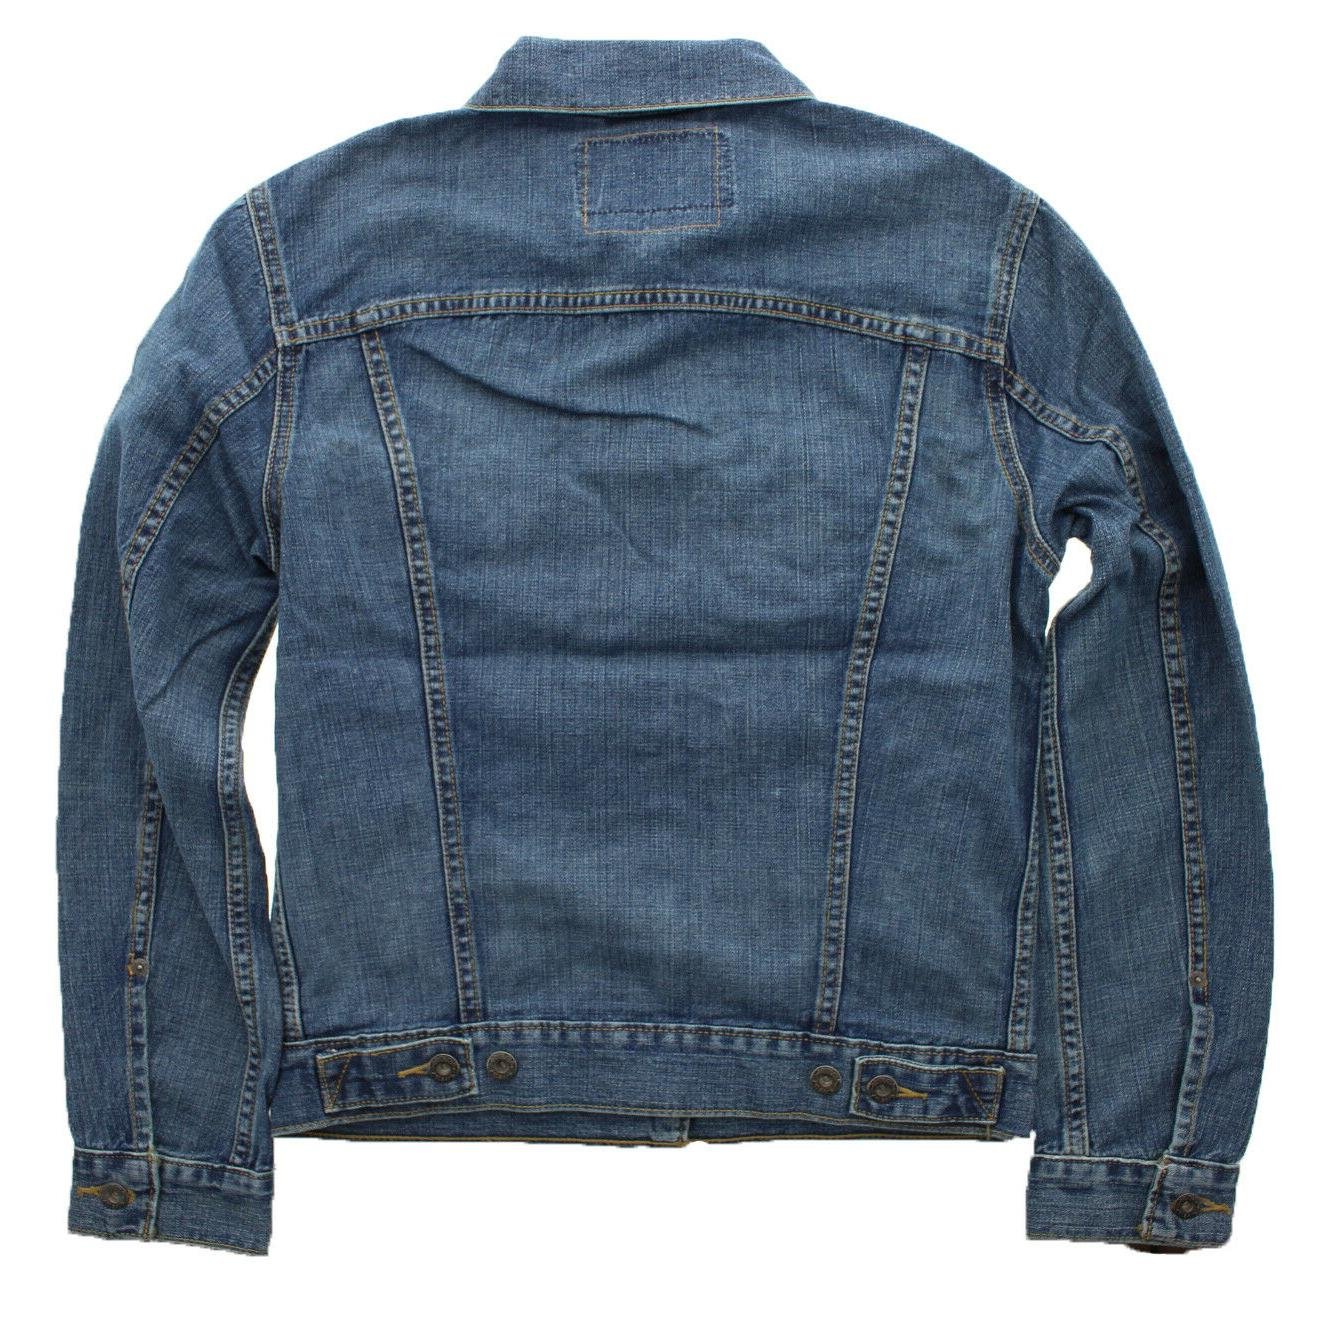 Levi's Jackets, Denim